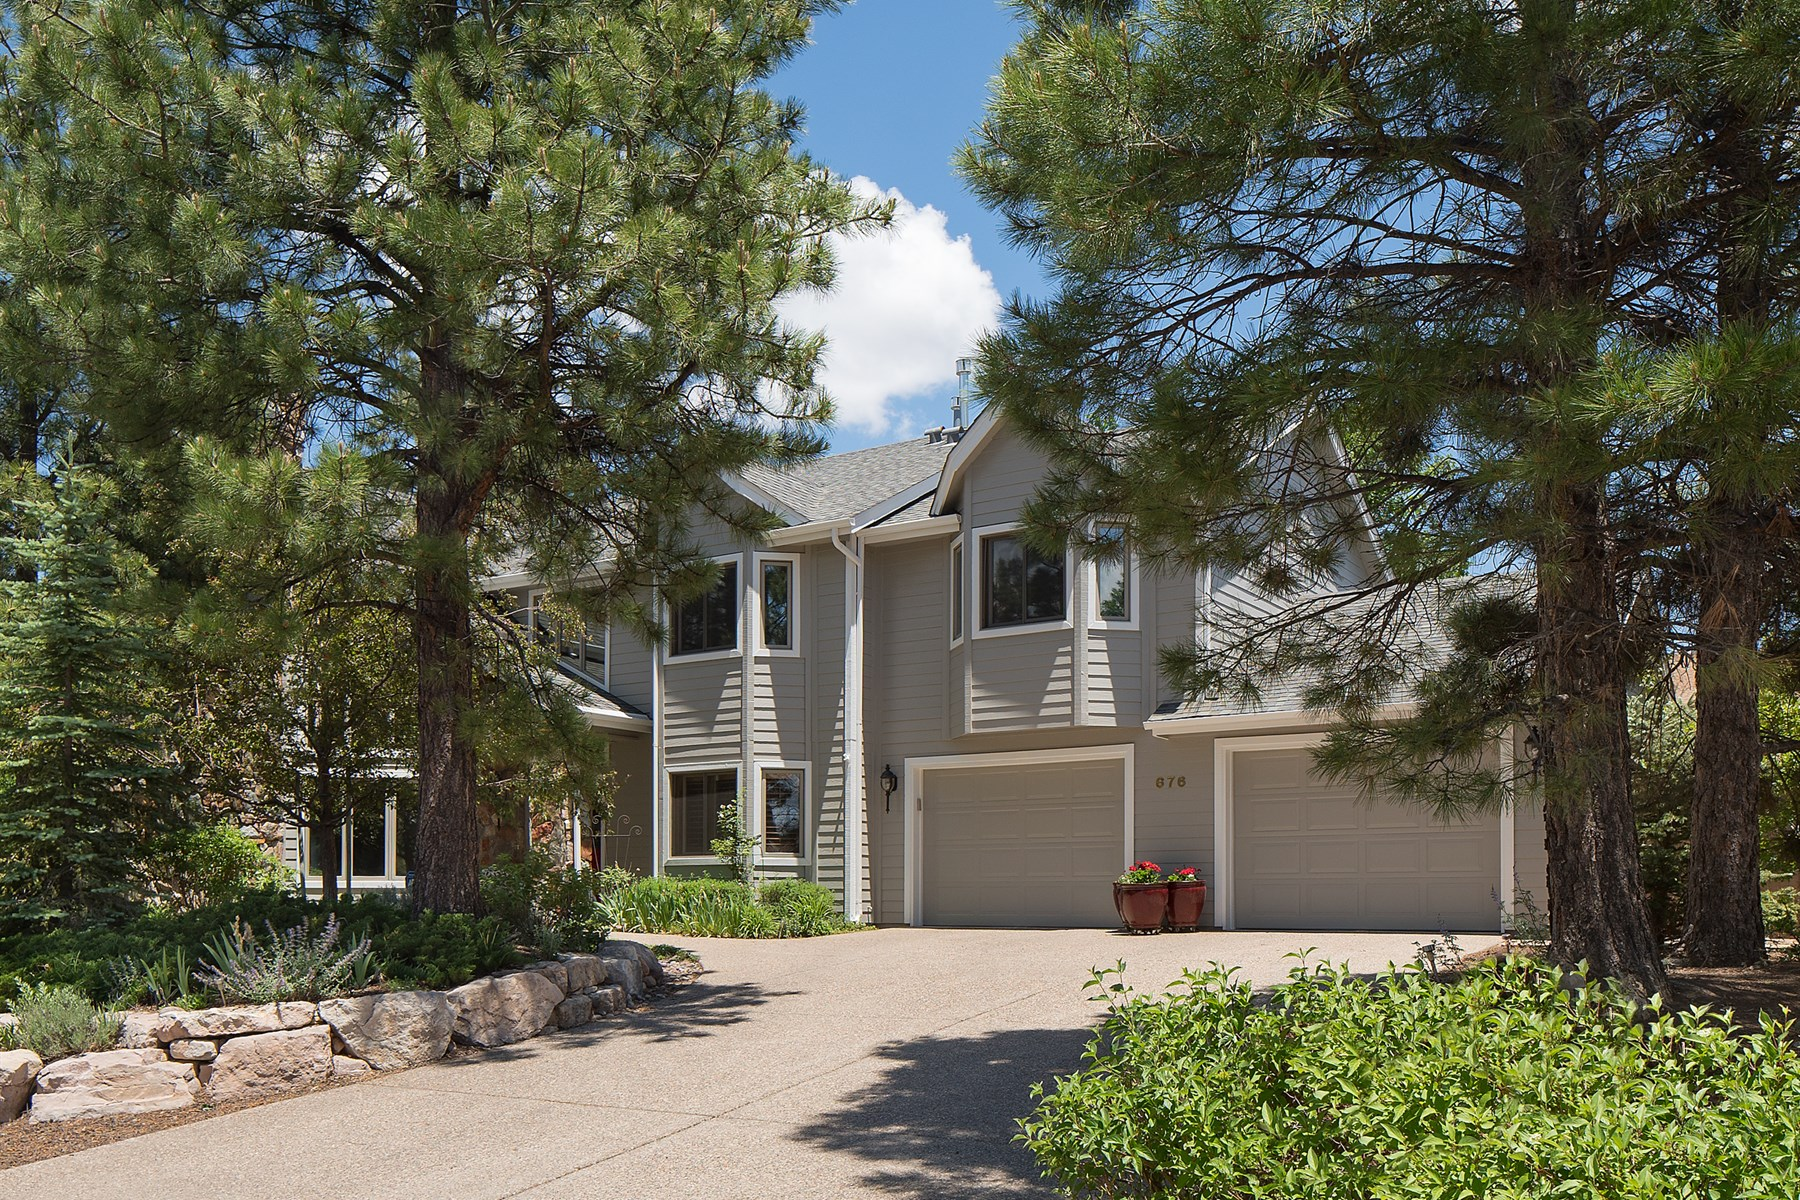 Maison unifamiliale pour l Vente à Amazing Amberwood Home 676 N Fox Hill Rd Flagstaff, Arizona, 86004 États-Unis